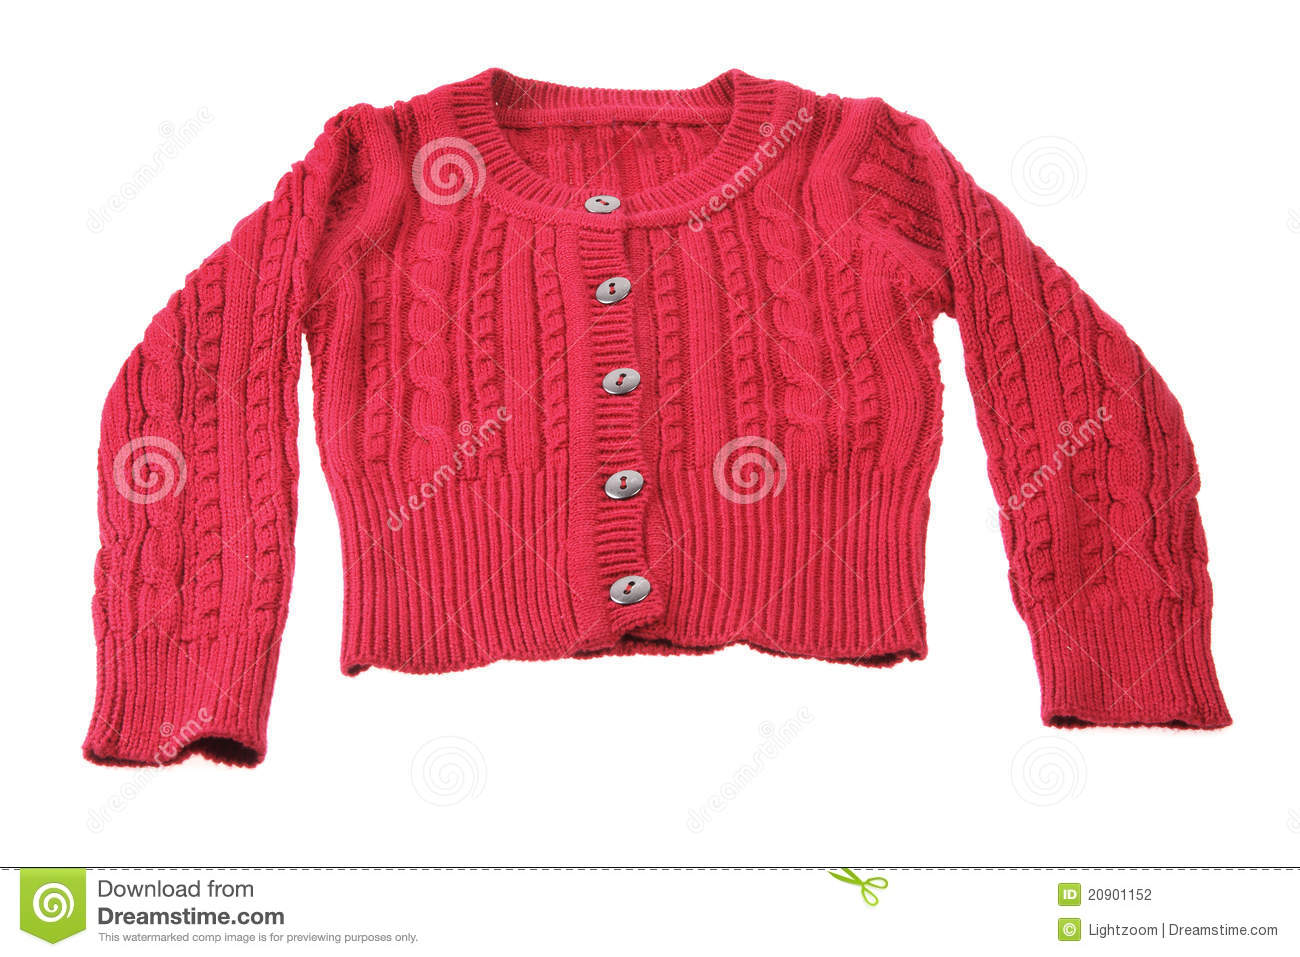 matches. ($ - $) Find great deals on the latest styles of Toddler red cardigan. Compare prices & save money on Baby & Kids' Sweaters.